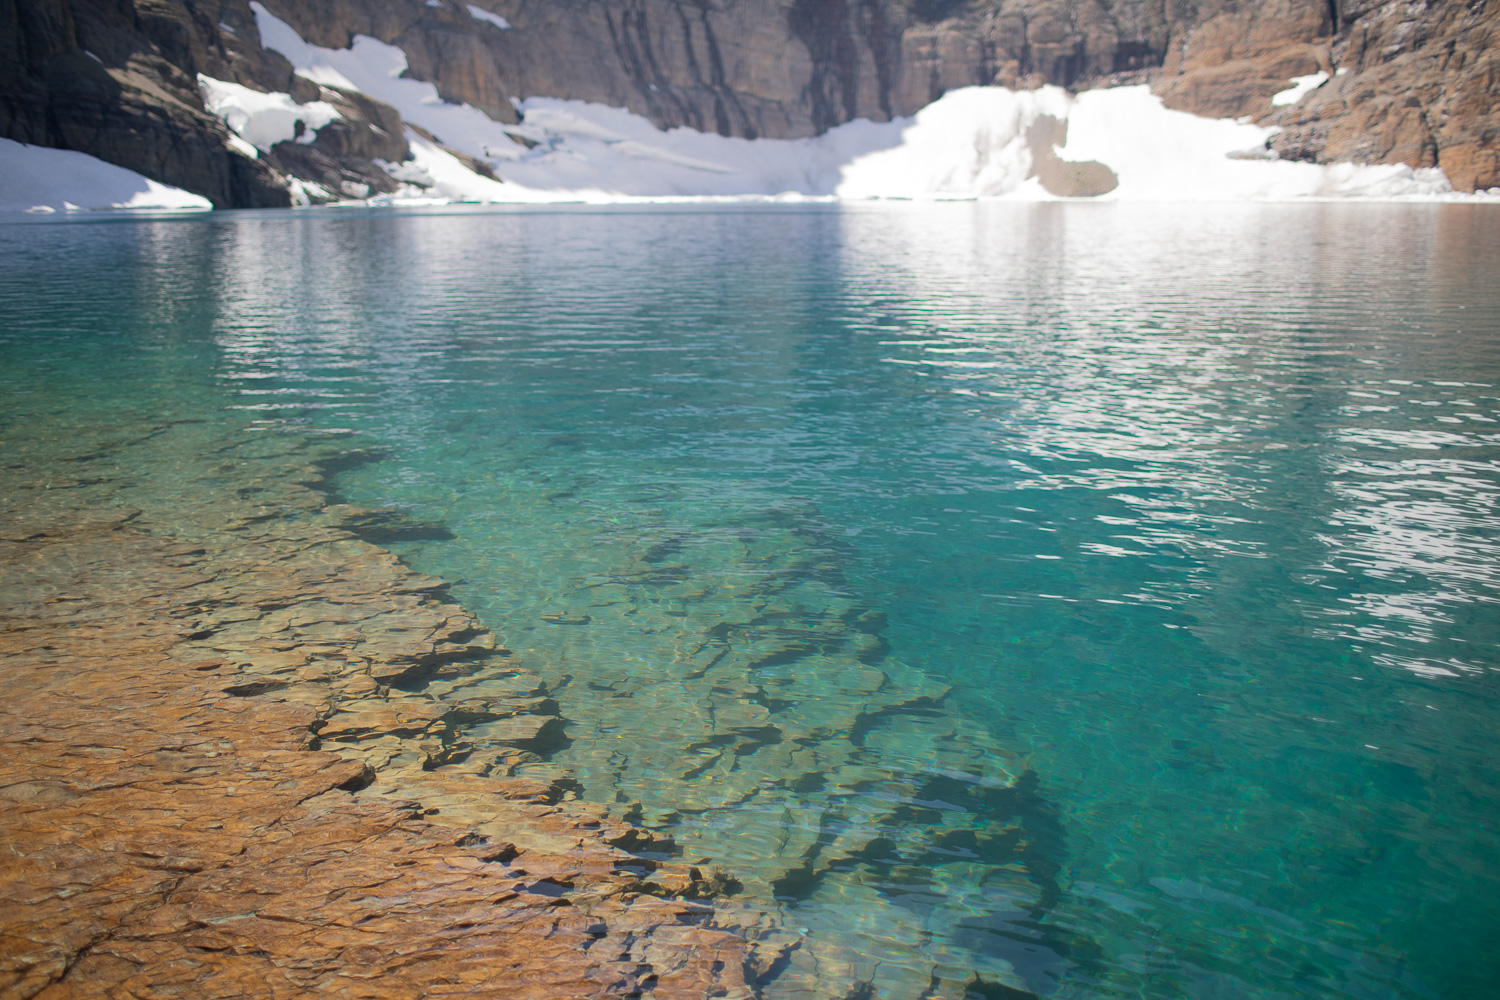 Detail of the rock formations in Iceberg Lake.